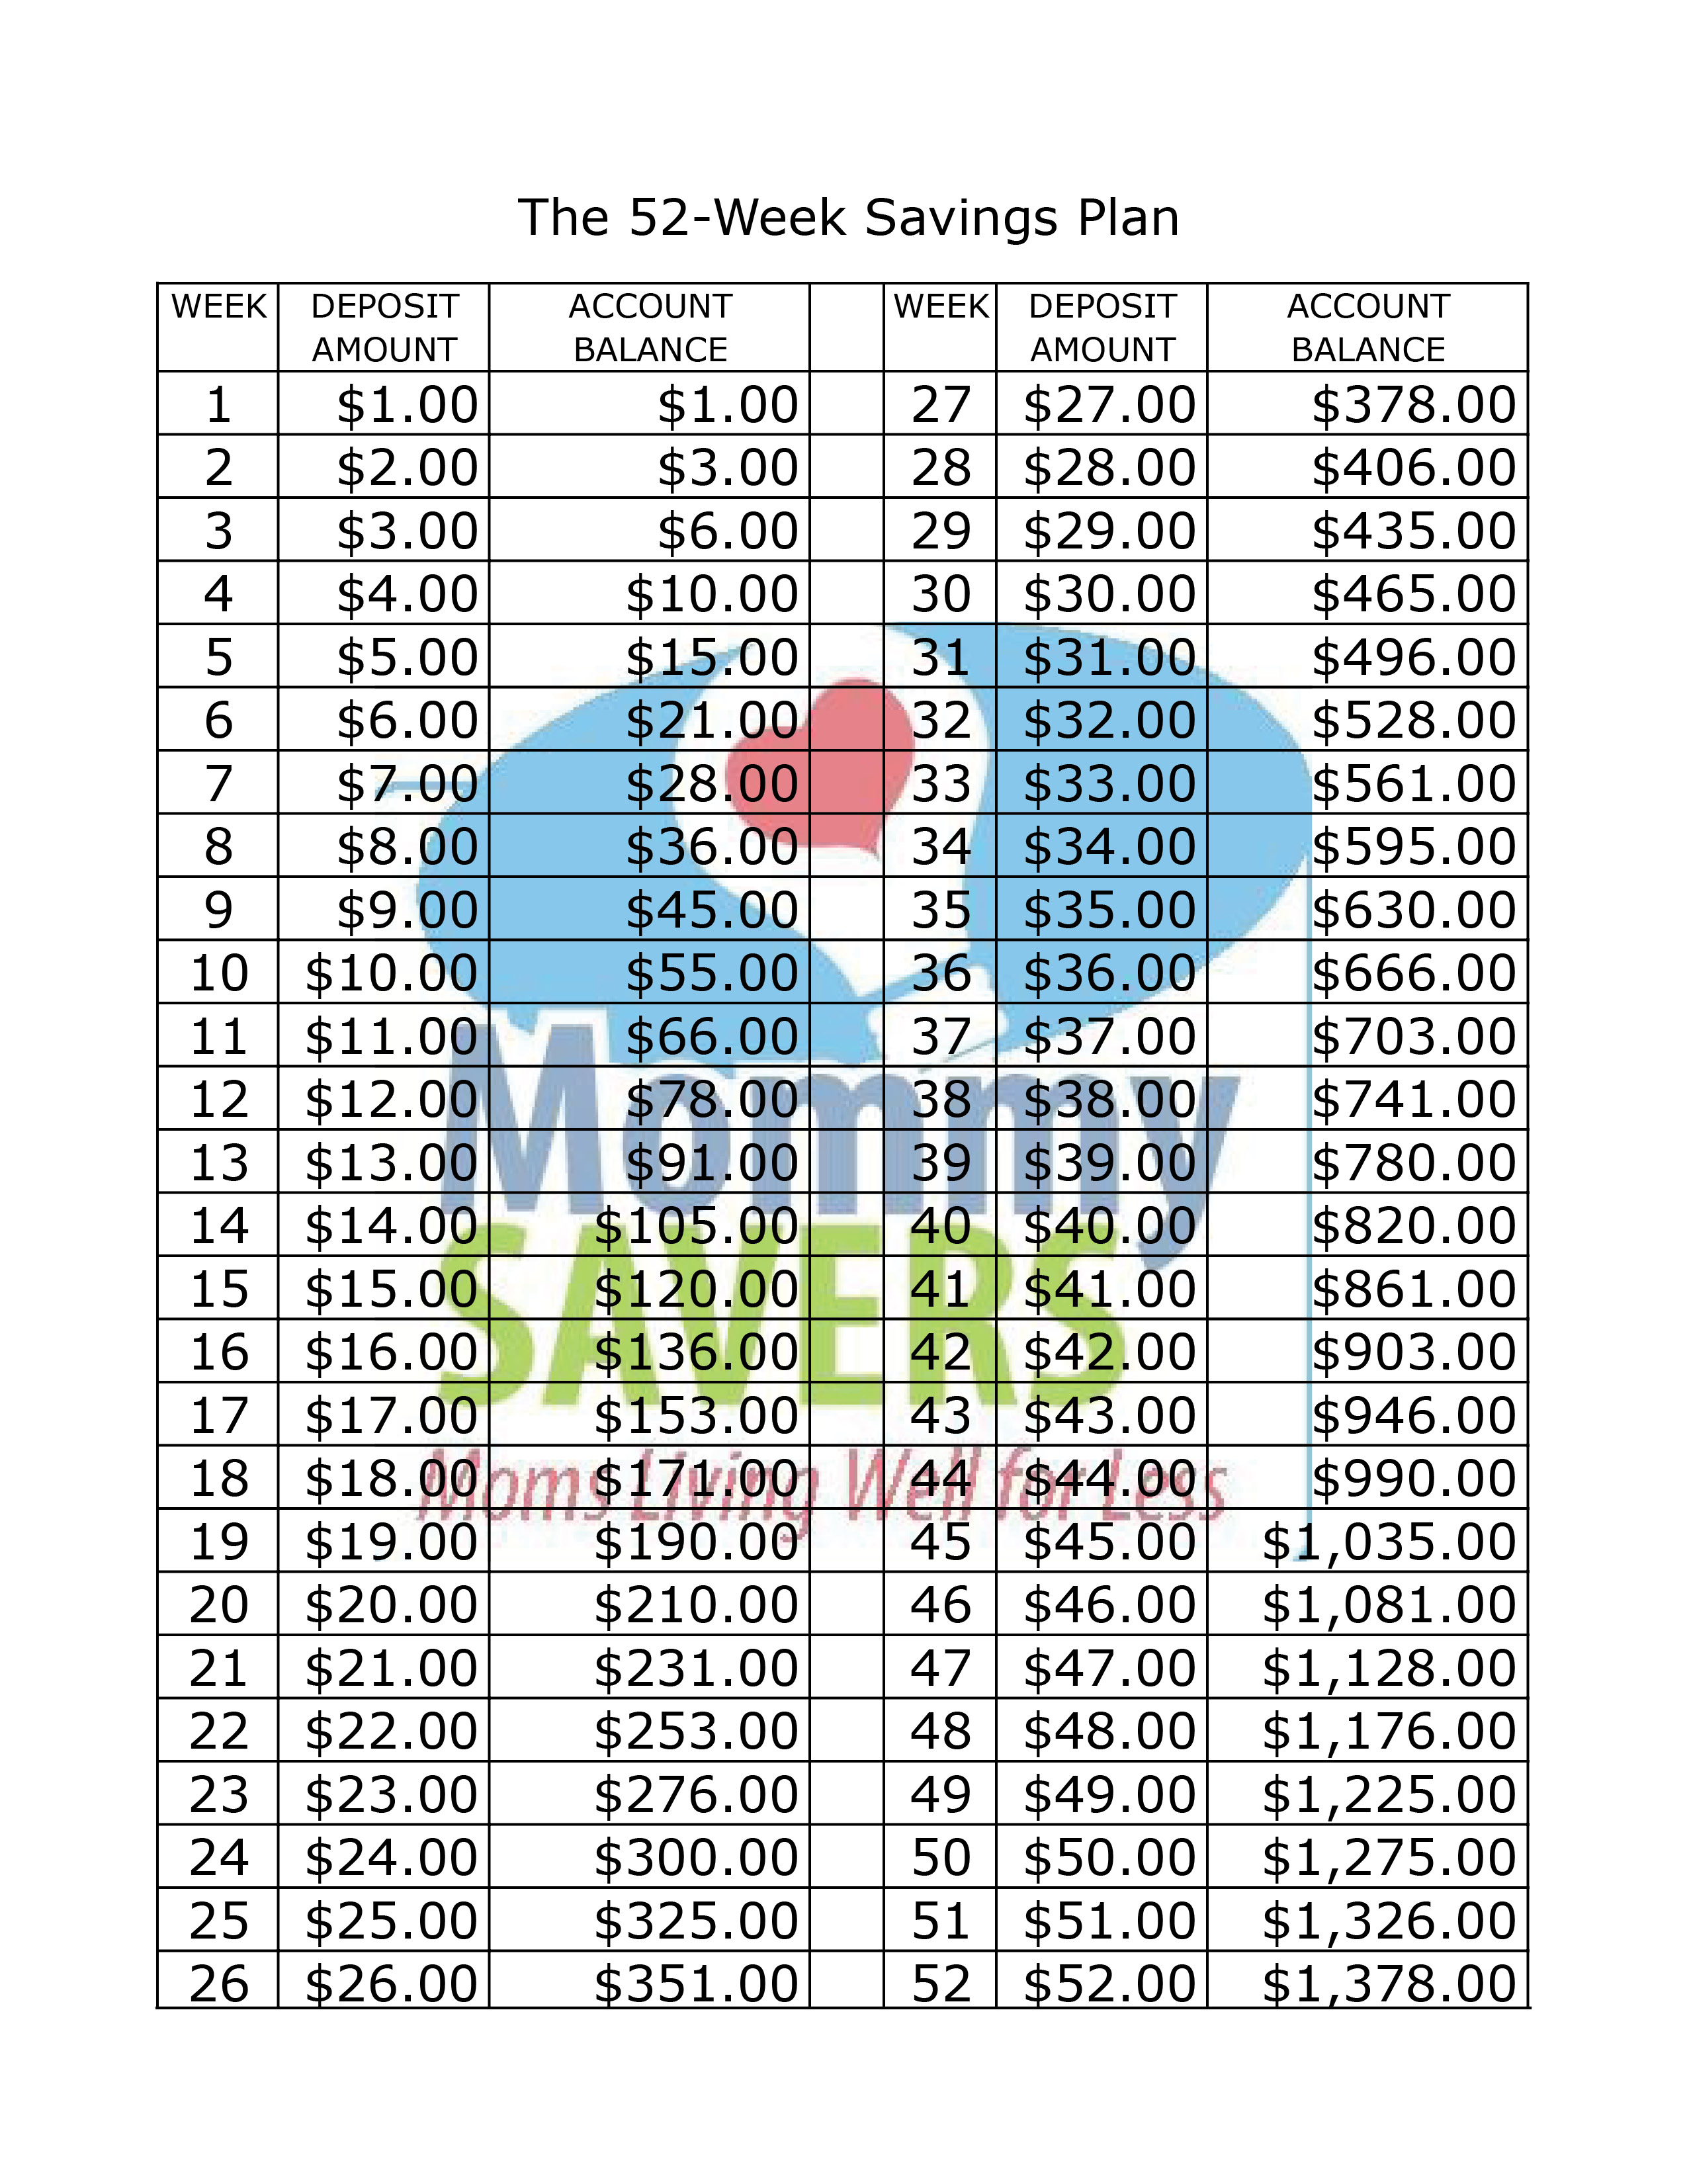 graphic about Money Chart Printable titled The 52-7 days Price savings Method Printable Chart - Mommysavers